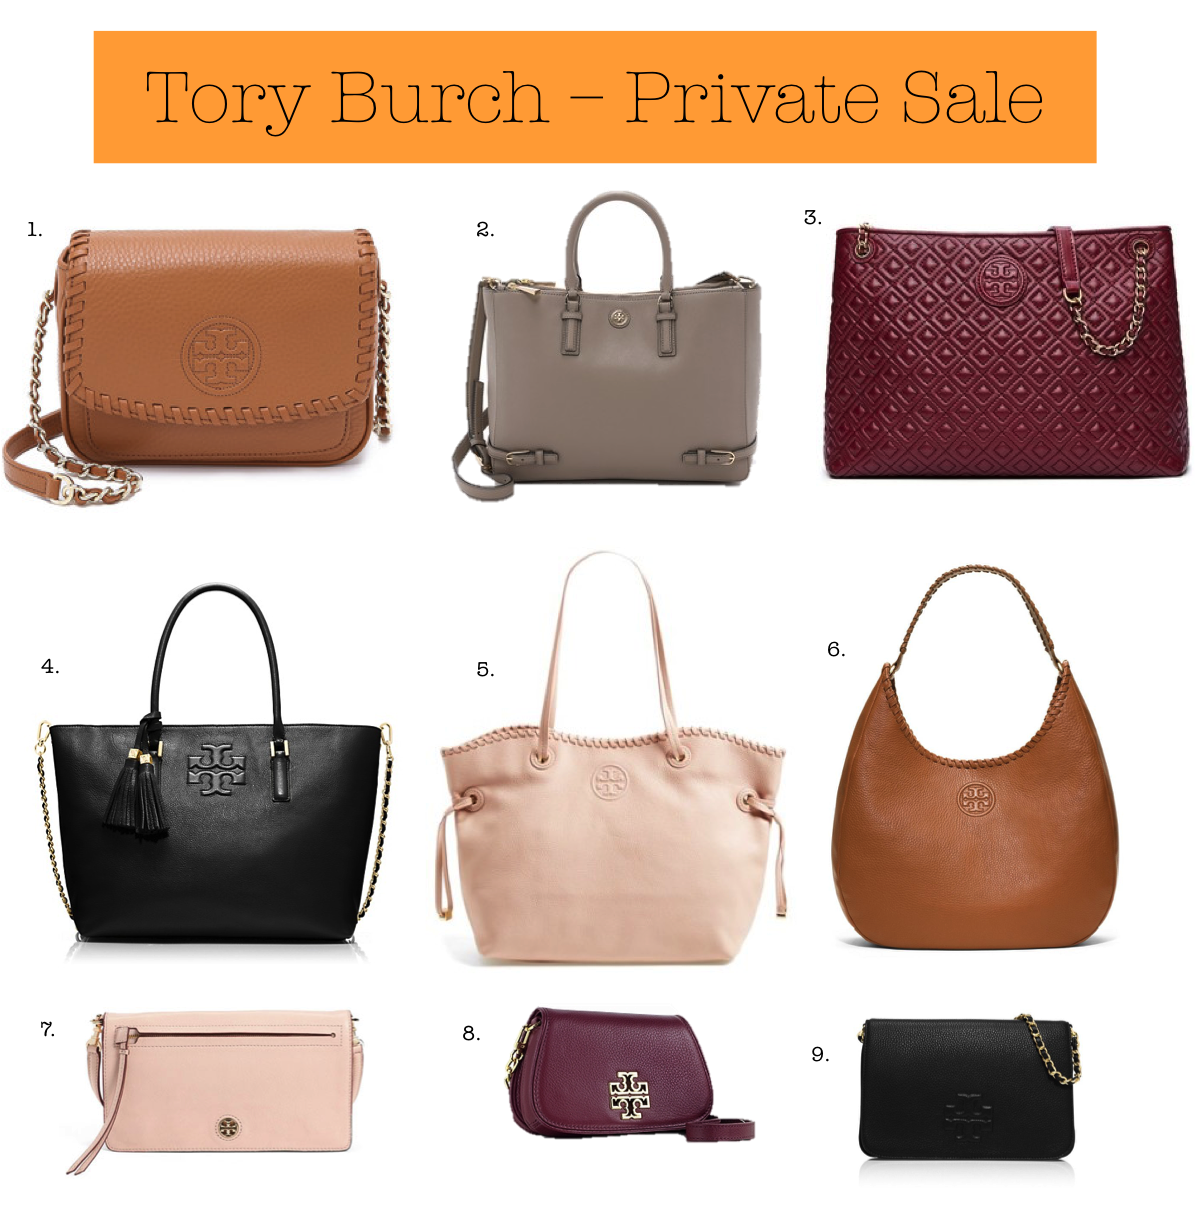 Tory Burch is having a pretty amazing private sale right now that is online only, which goes without saying, but yay for being able to sit in bed and shop in your pajamas! The sale last till Friday, August 19 and everything included in the sale is up to 70% off.